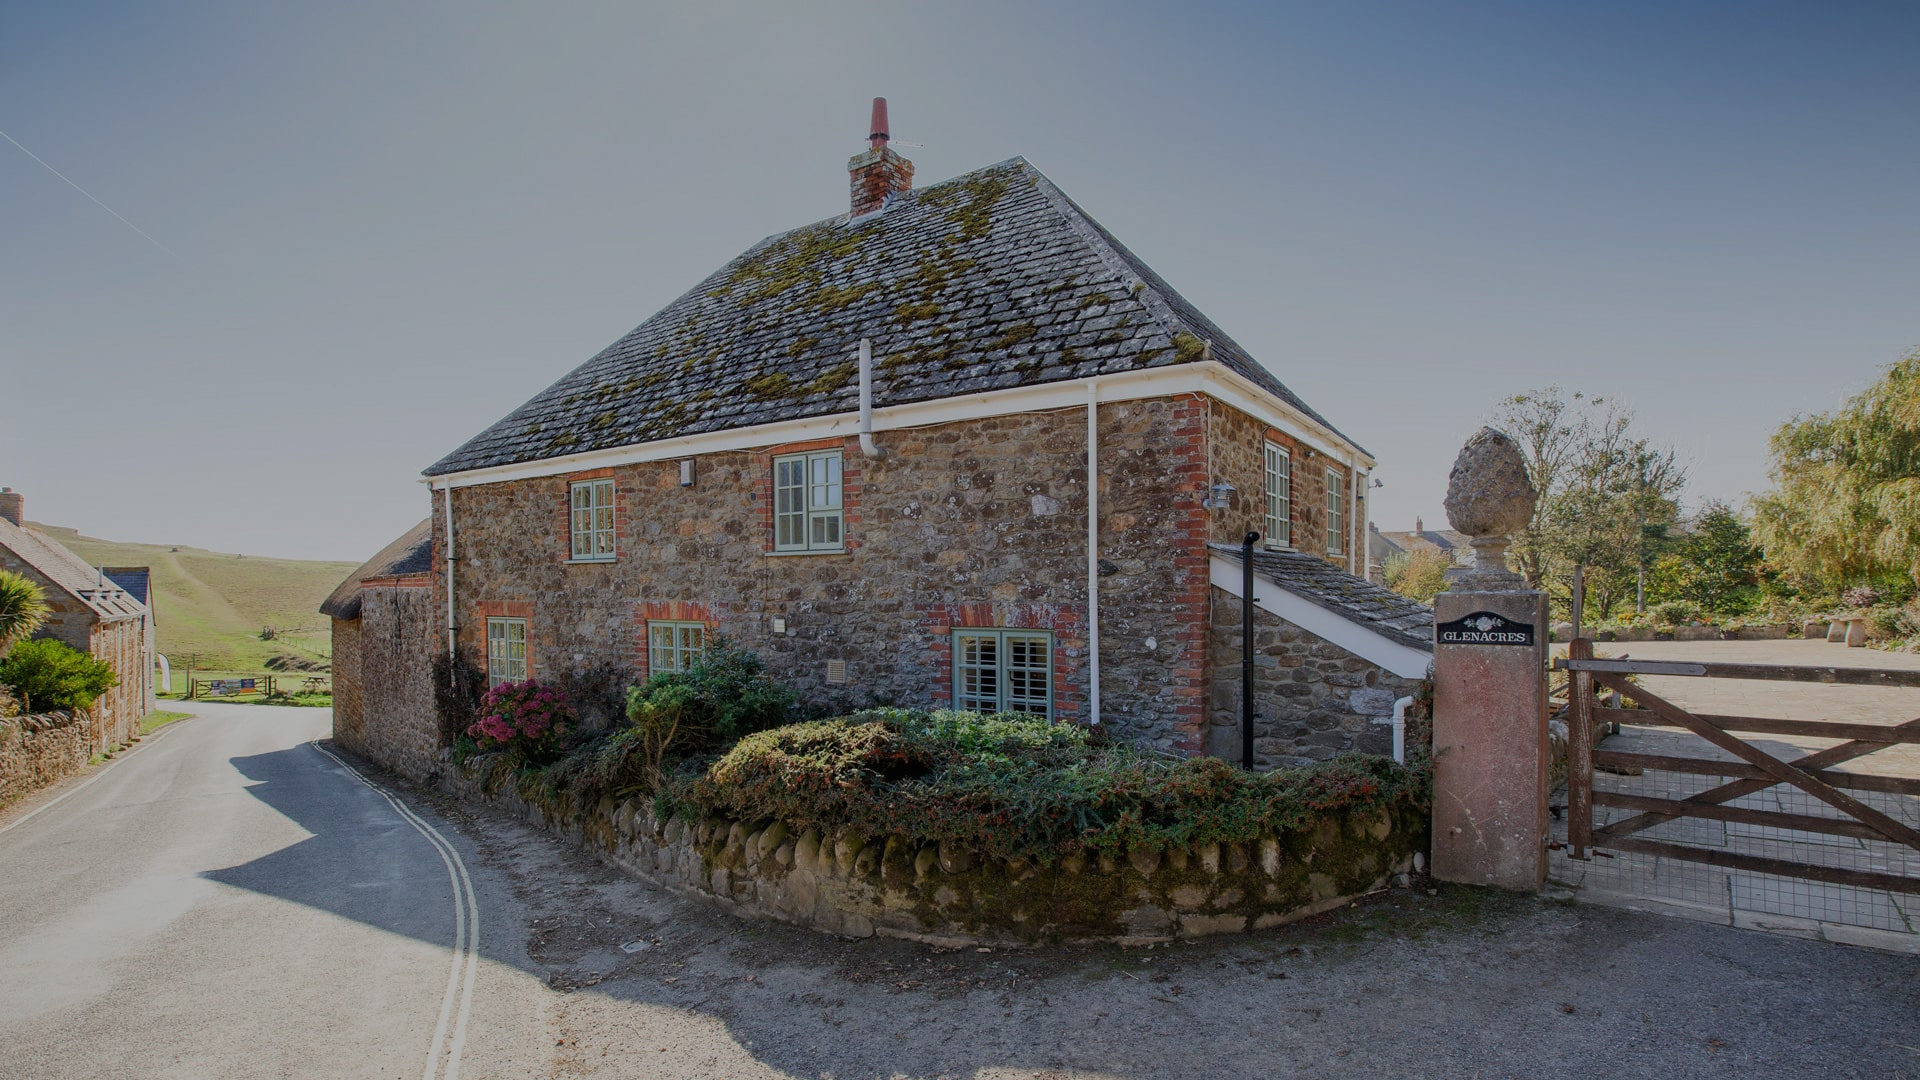 Glenacres - Luxury Holiday Cottage in Seatown, Dorset